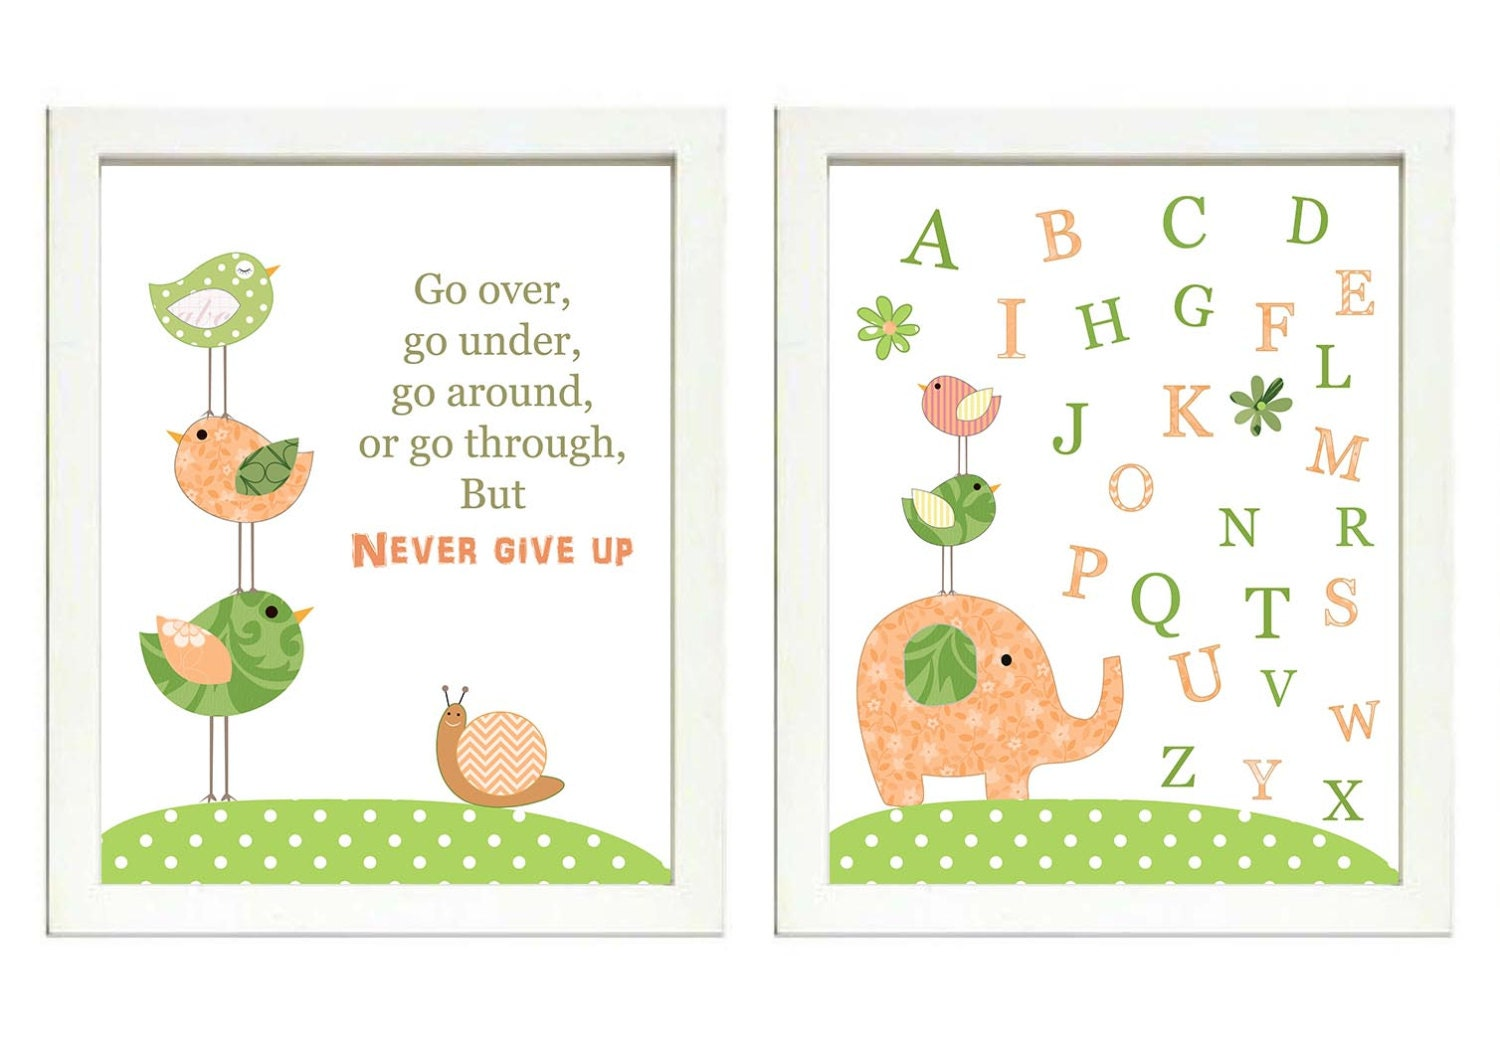 Peach Coral Green Nursery Art Print Set of 2 Elephant Bird Turtle Snail ABC Alphabet Baby Child Kid